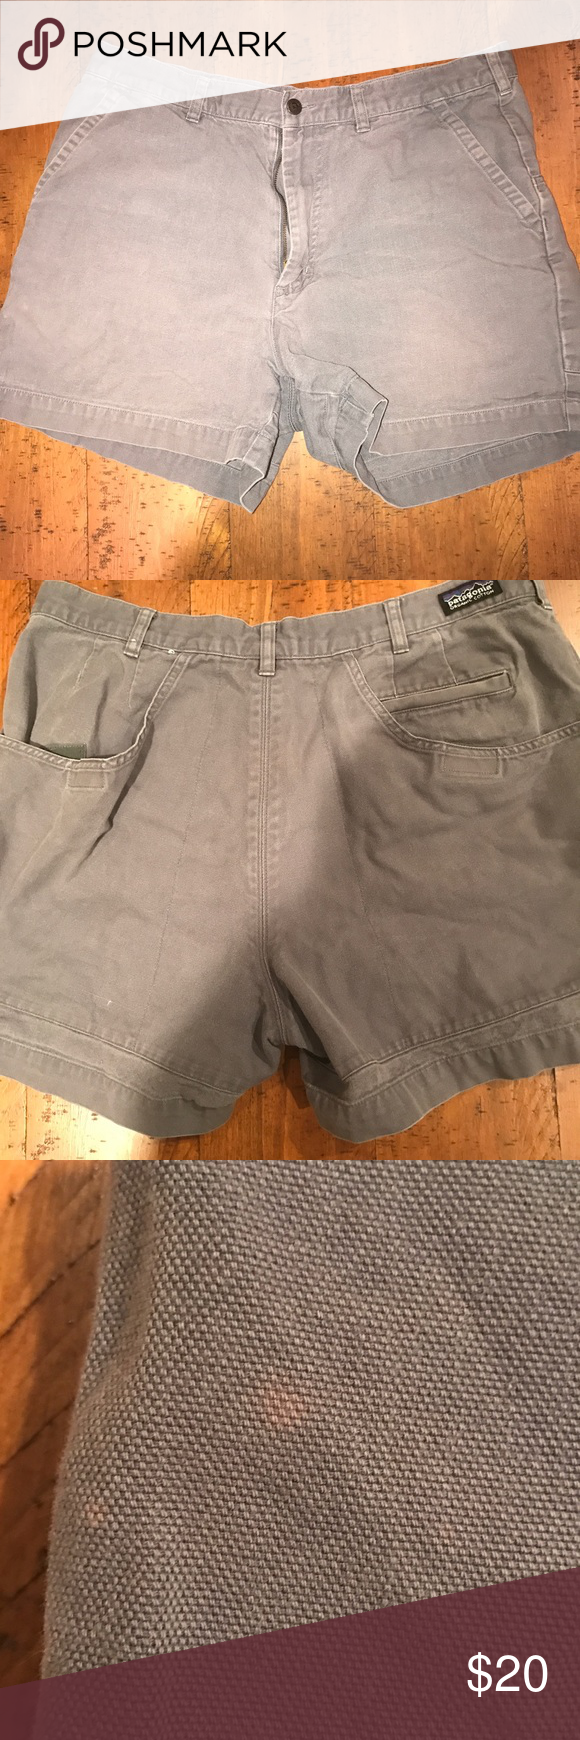 Patagonia Stand Up shorts (36) Gray/Navy standup shorts. 5in inseam. Has one character mark on the outside left of the short. Not noticeable from afar Patagonia Shorts Flat Front